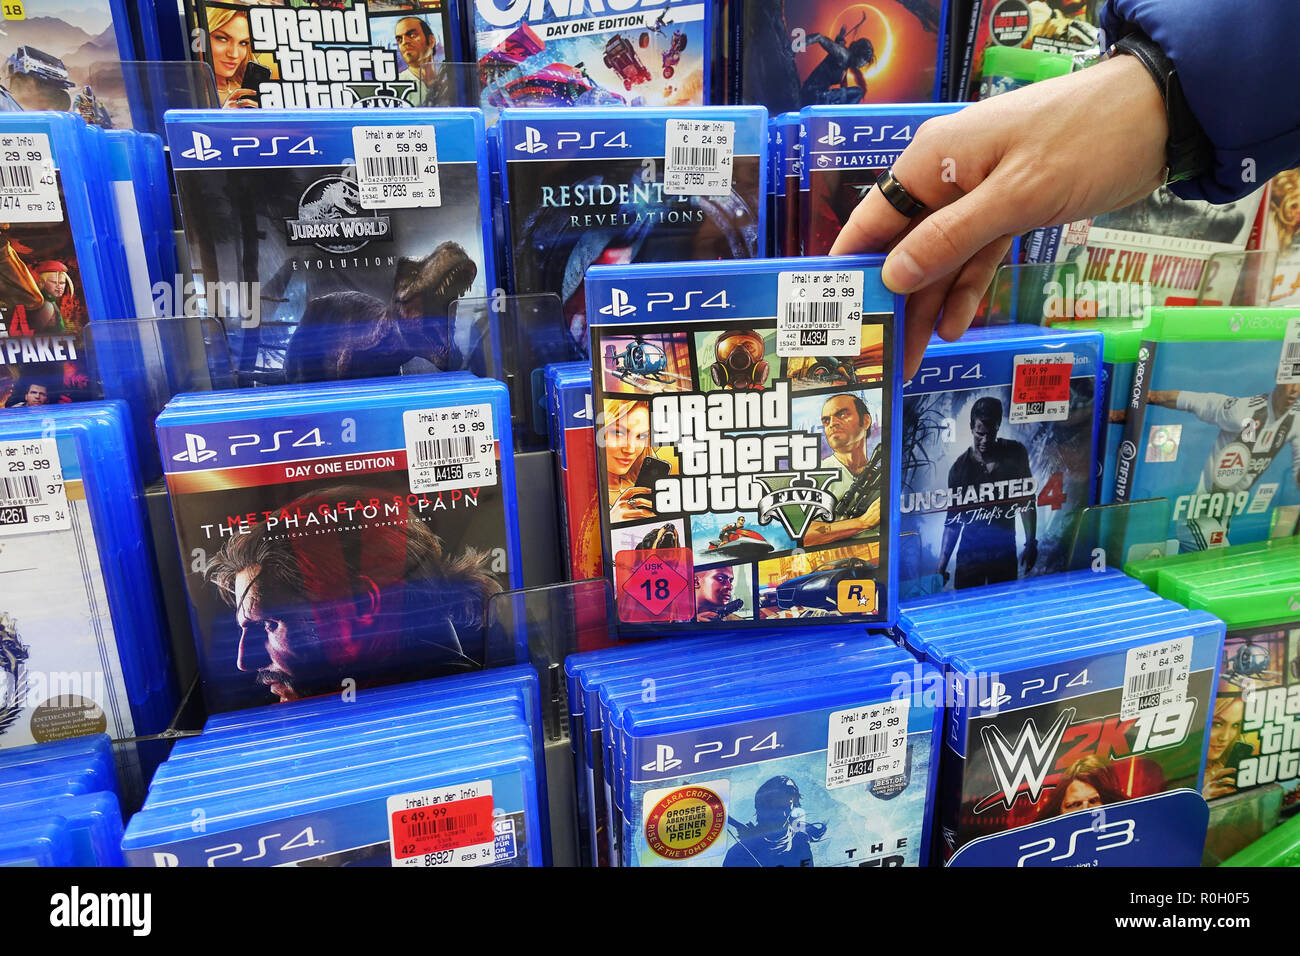 Store display filled with PlayStation 4 games for a home